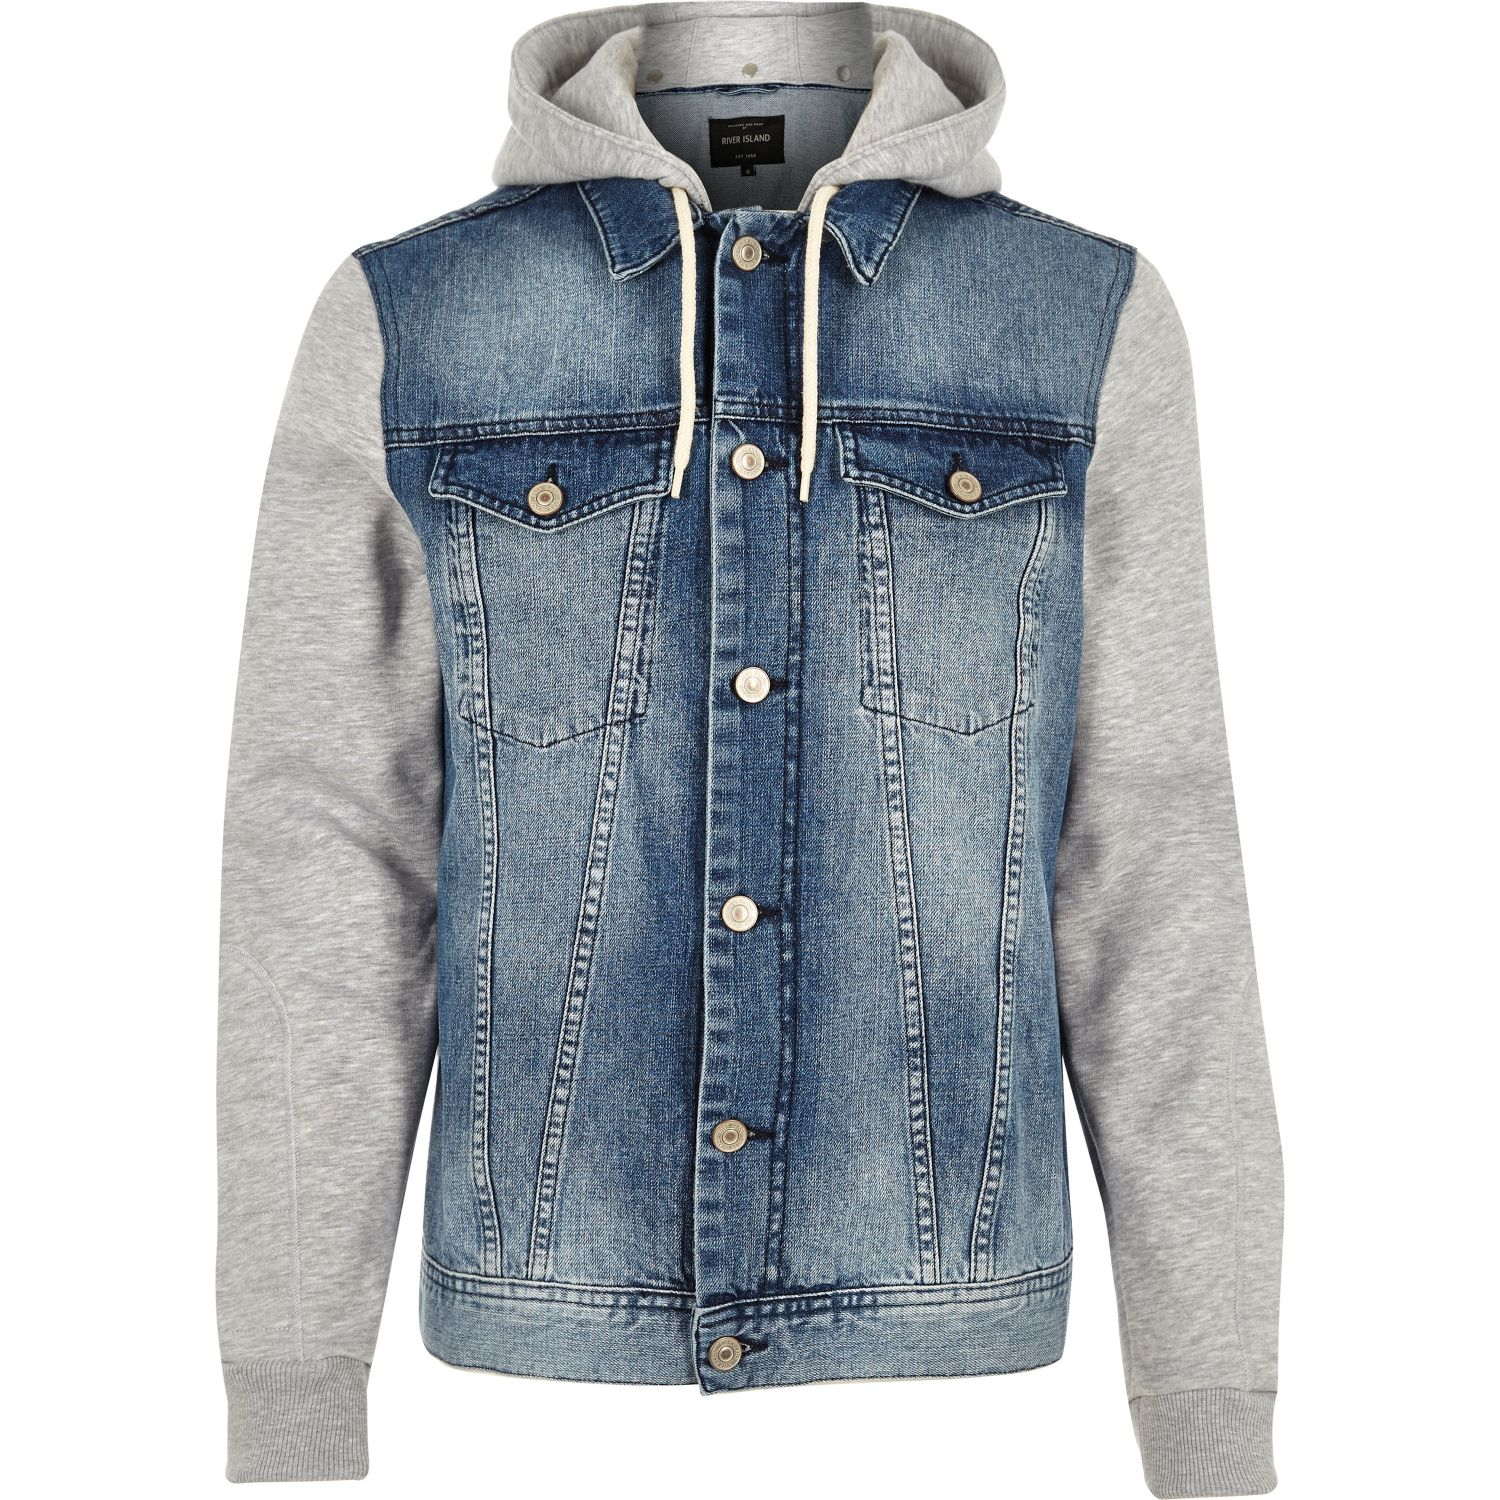 river island blue jersey hoodie denim jacket in blue for. Black Bedroom Furniture Sets. Home Design Ideas